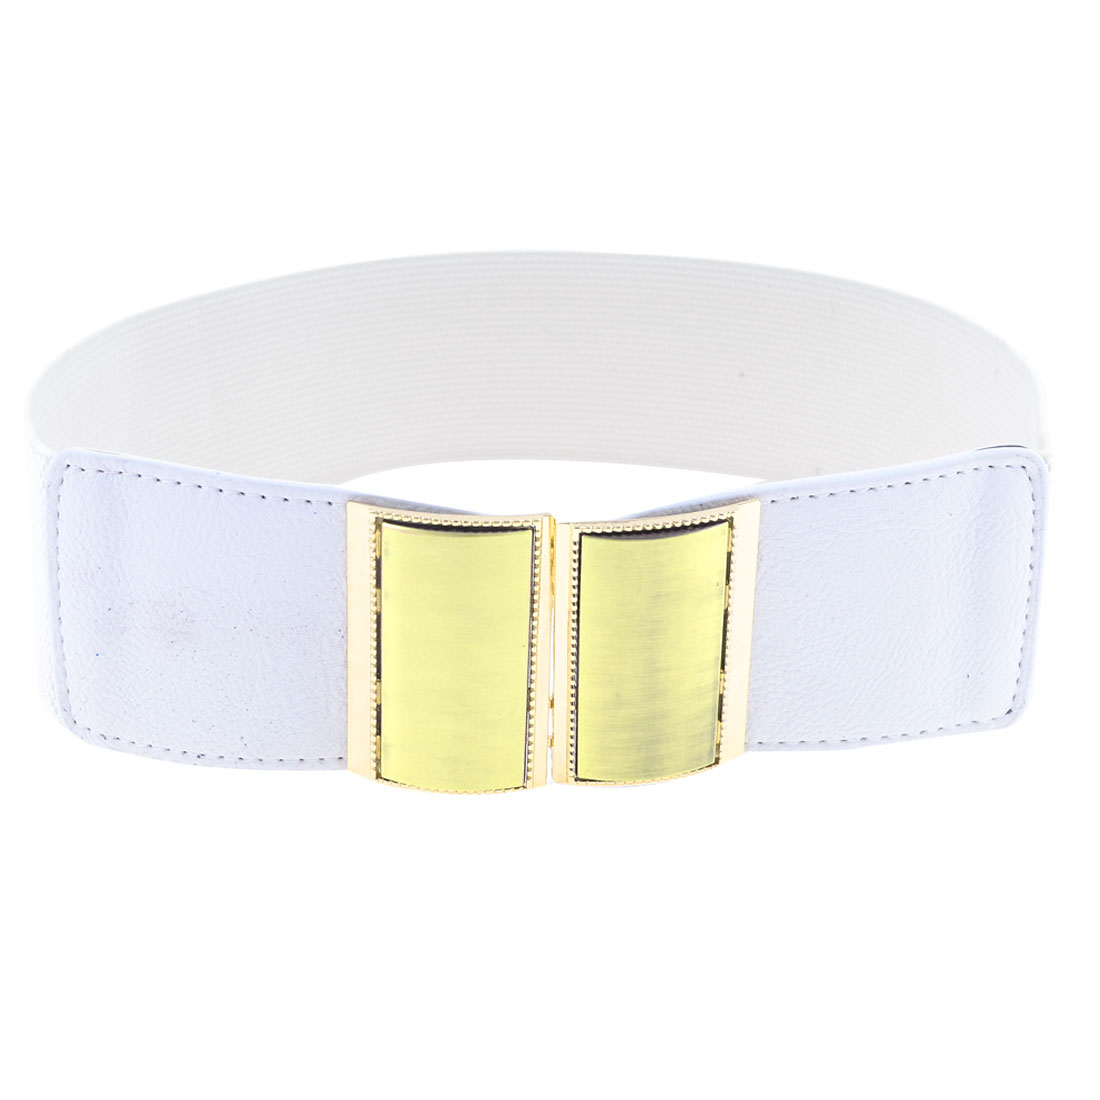 Woman Gold Tone Rectangle Interlocking Buckle Decor Cinch Waist Belt Band White